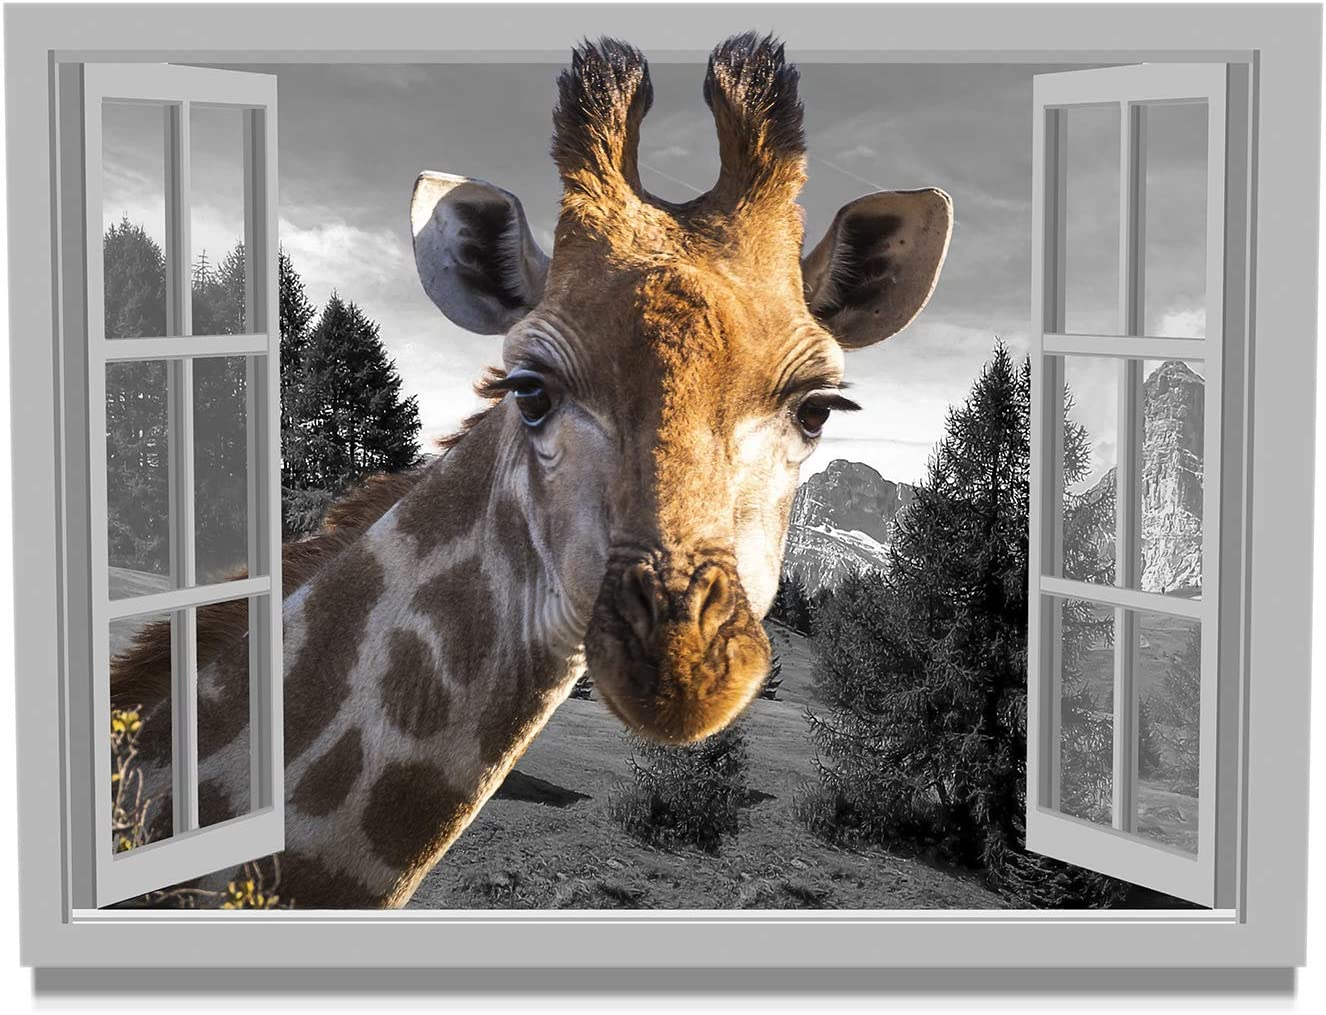 Giraffe Wall Art for Living Room Animal Head from Open Window Outside Room Painting Print on Canvas Black White Landscape Window View Picture Poster Framed Wall Decor 12x16inches Ready to Hang